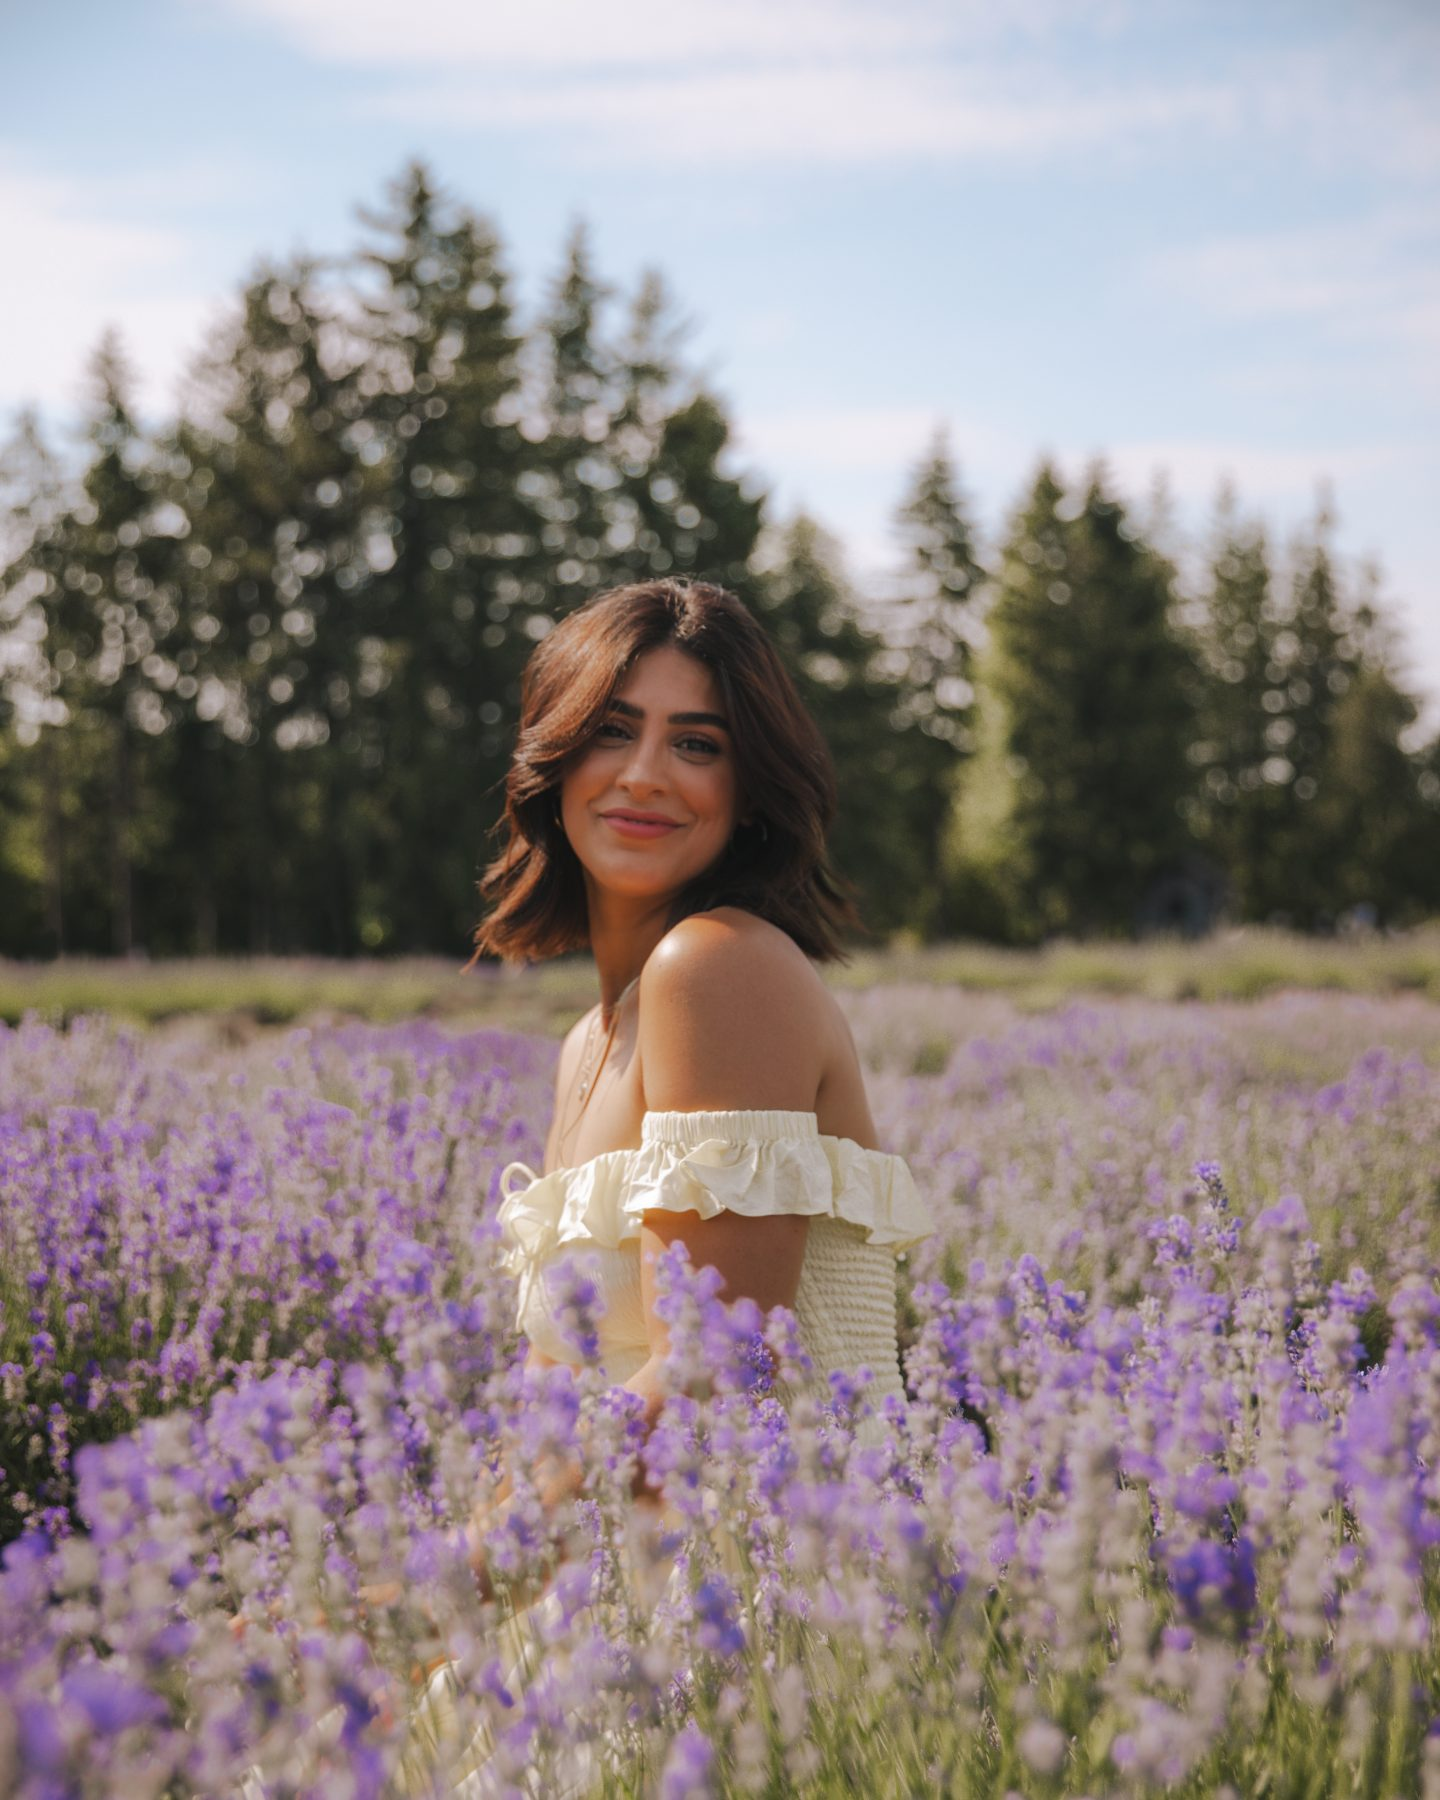 Visiting Maison Lavende, the lavender fields near Montreal, in July